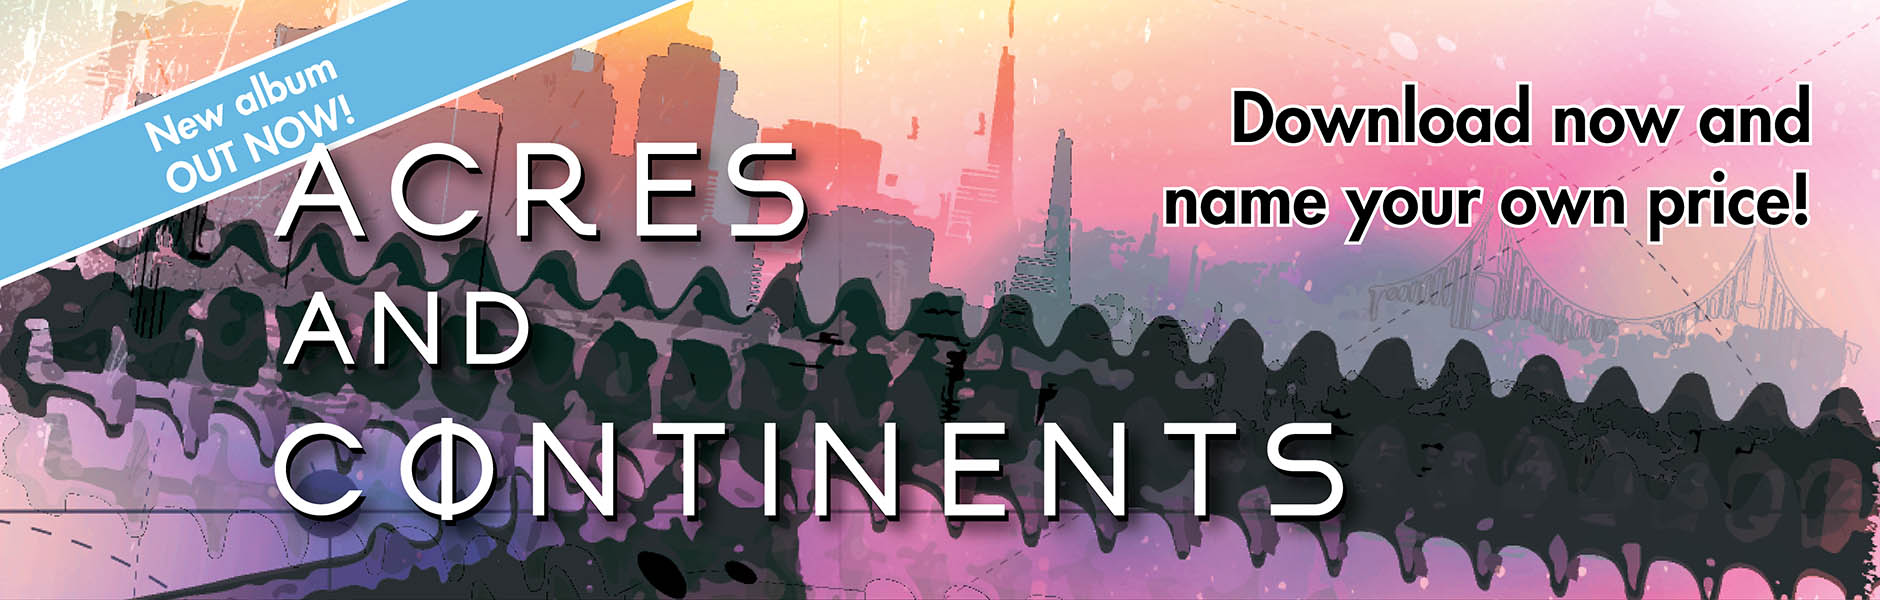 Acres and Continents OUT NOW banner